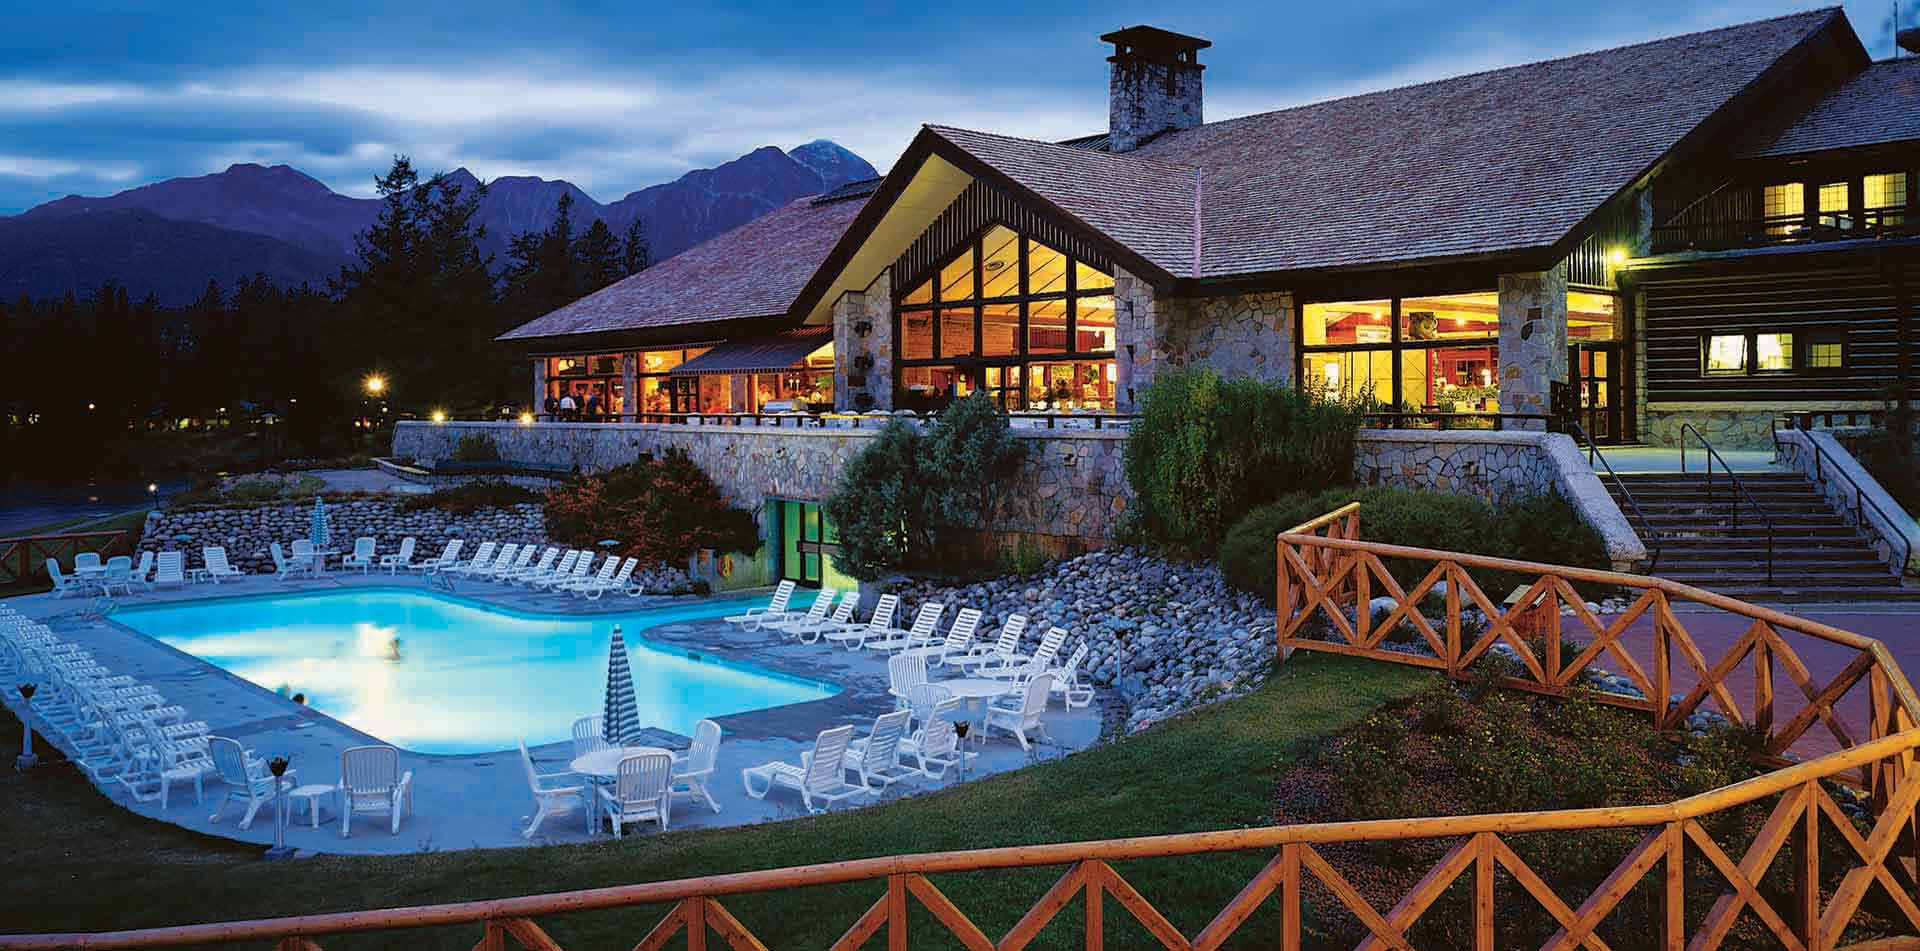 North America Canada Alberta Rockies Jasper Park Lodge National Park hotel pool - luxury vacation destinations